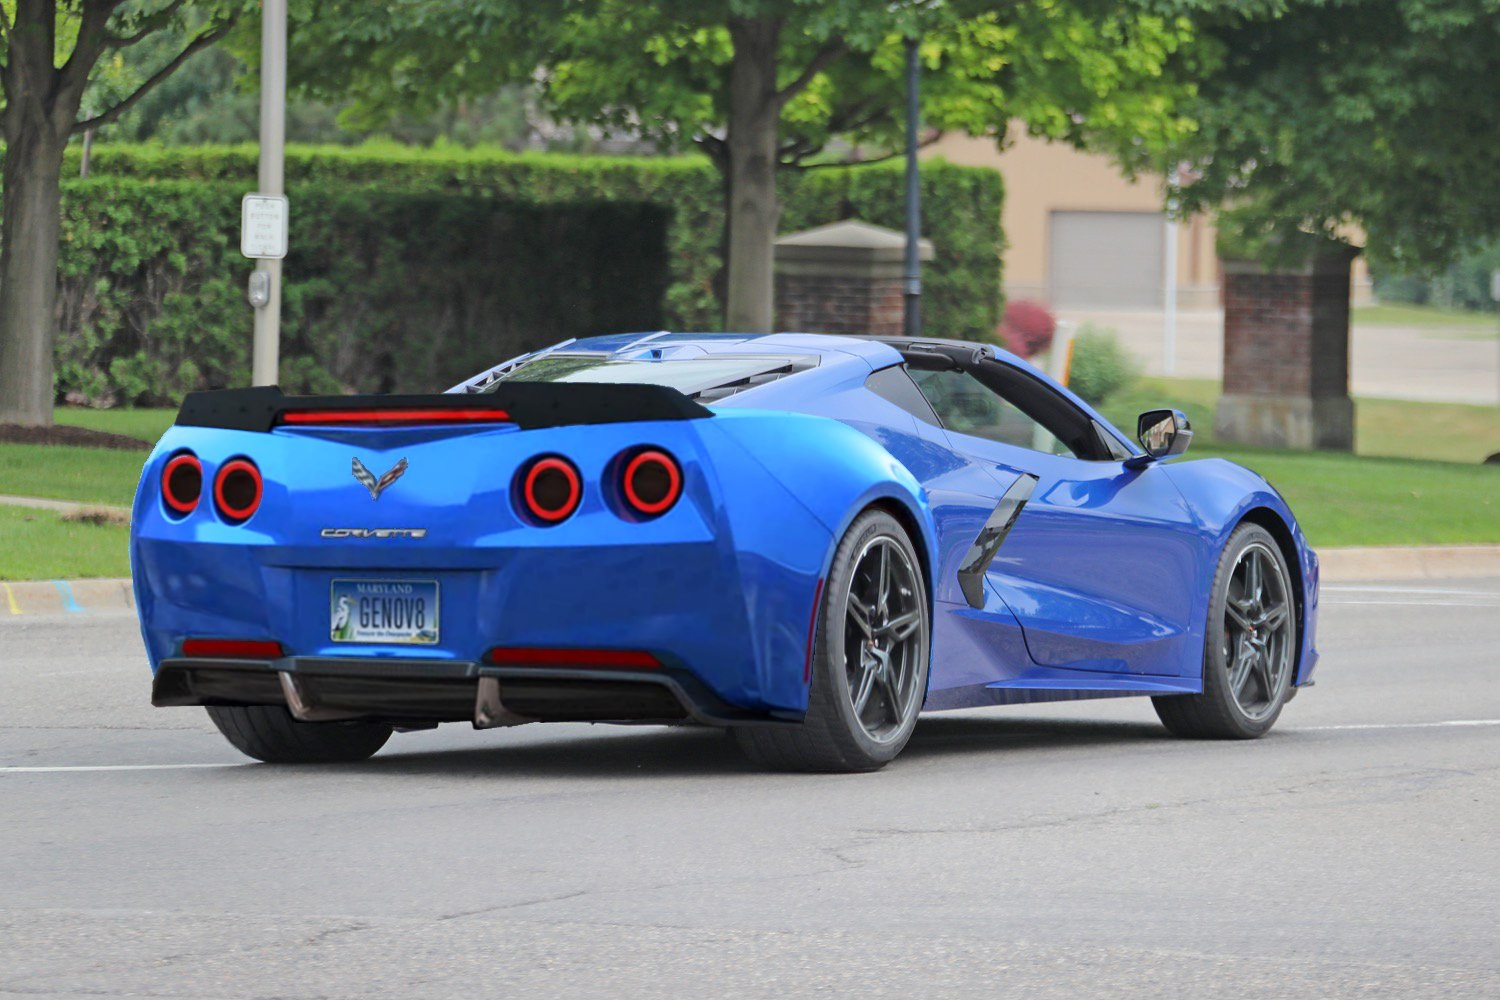 C8 Corvette rendering with round taillights